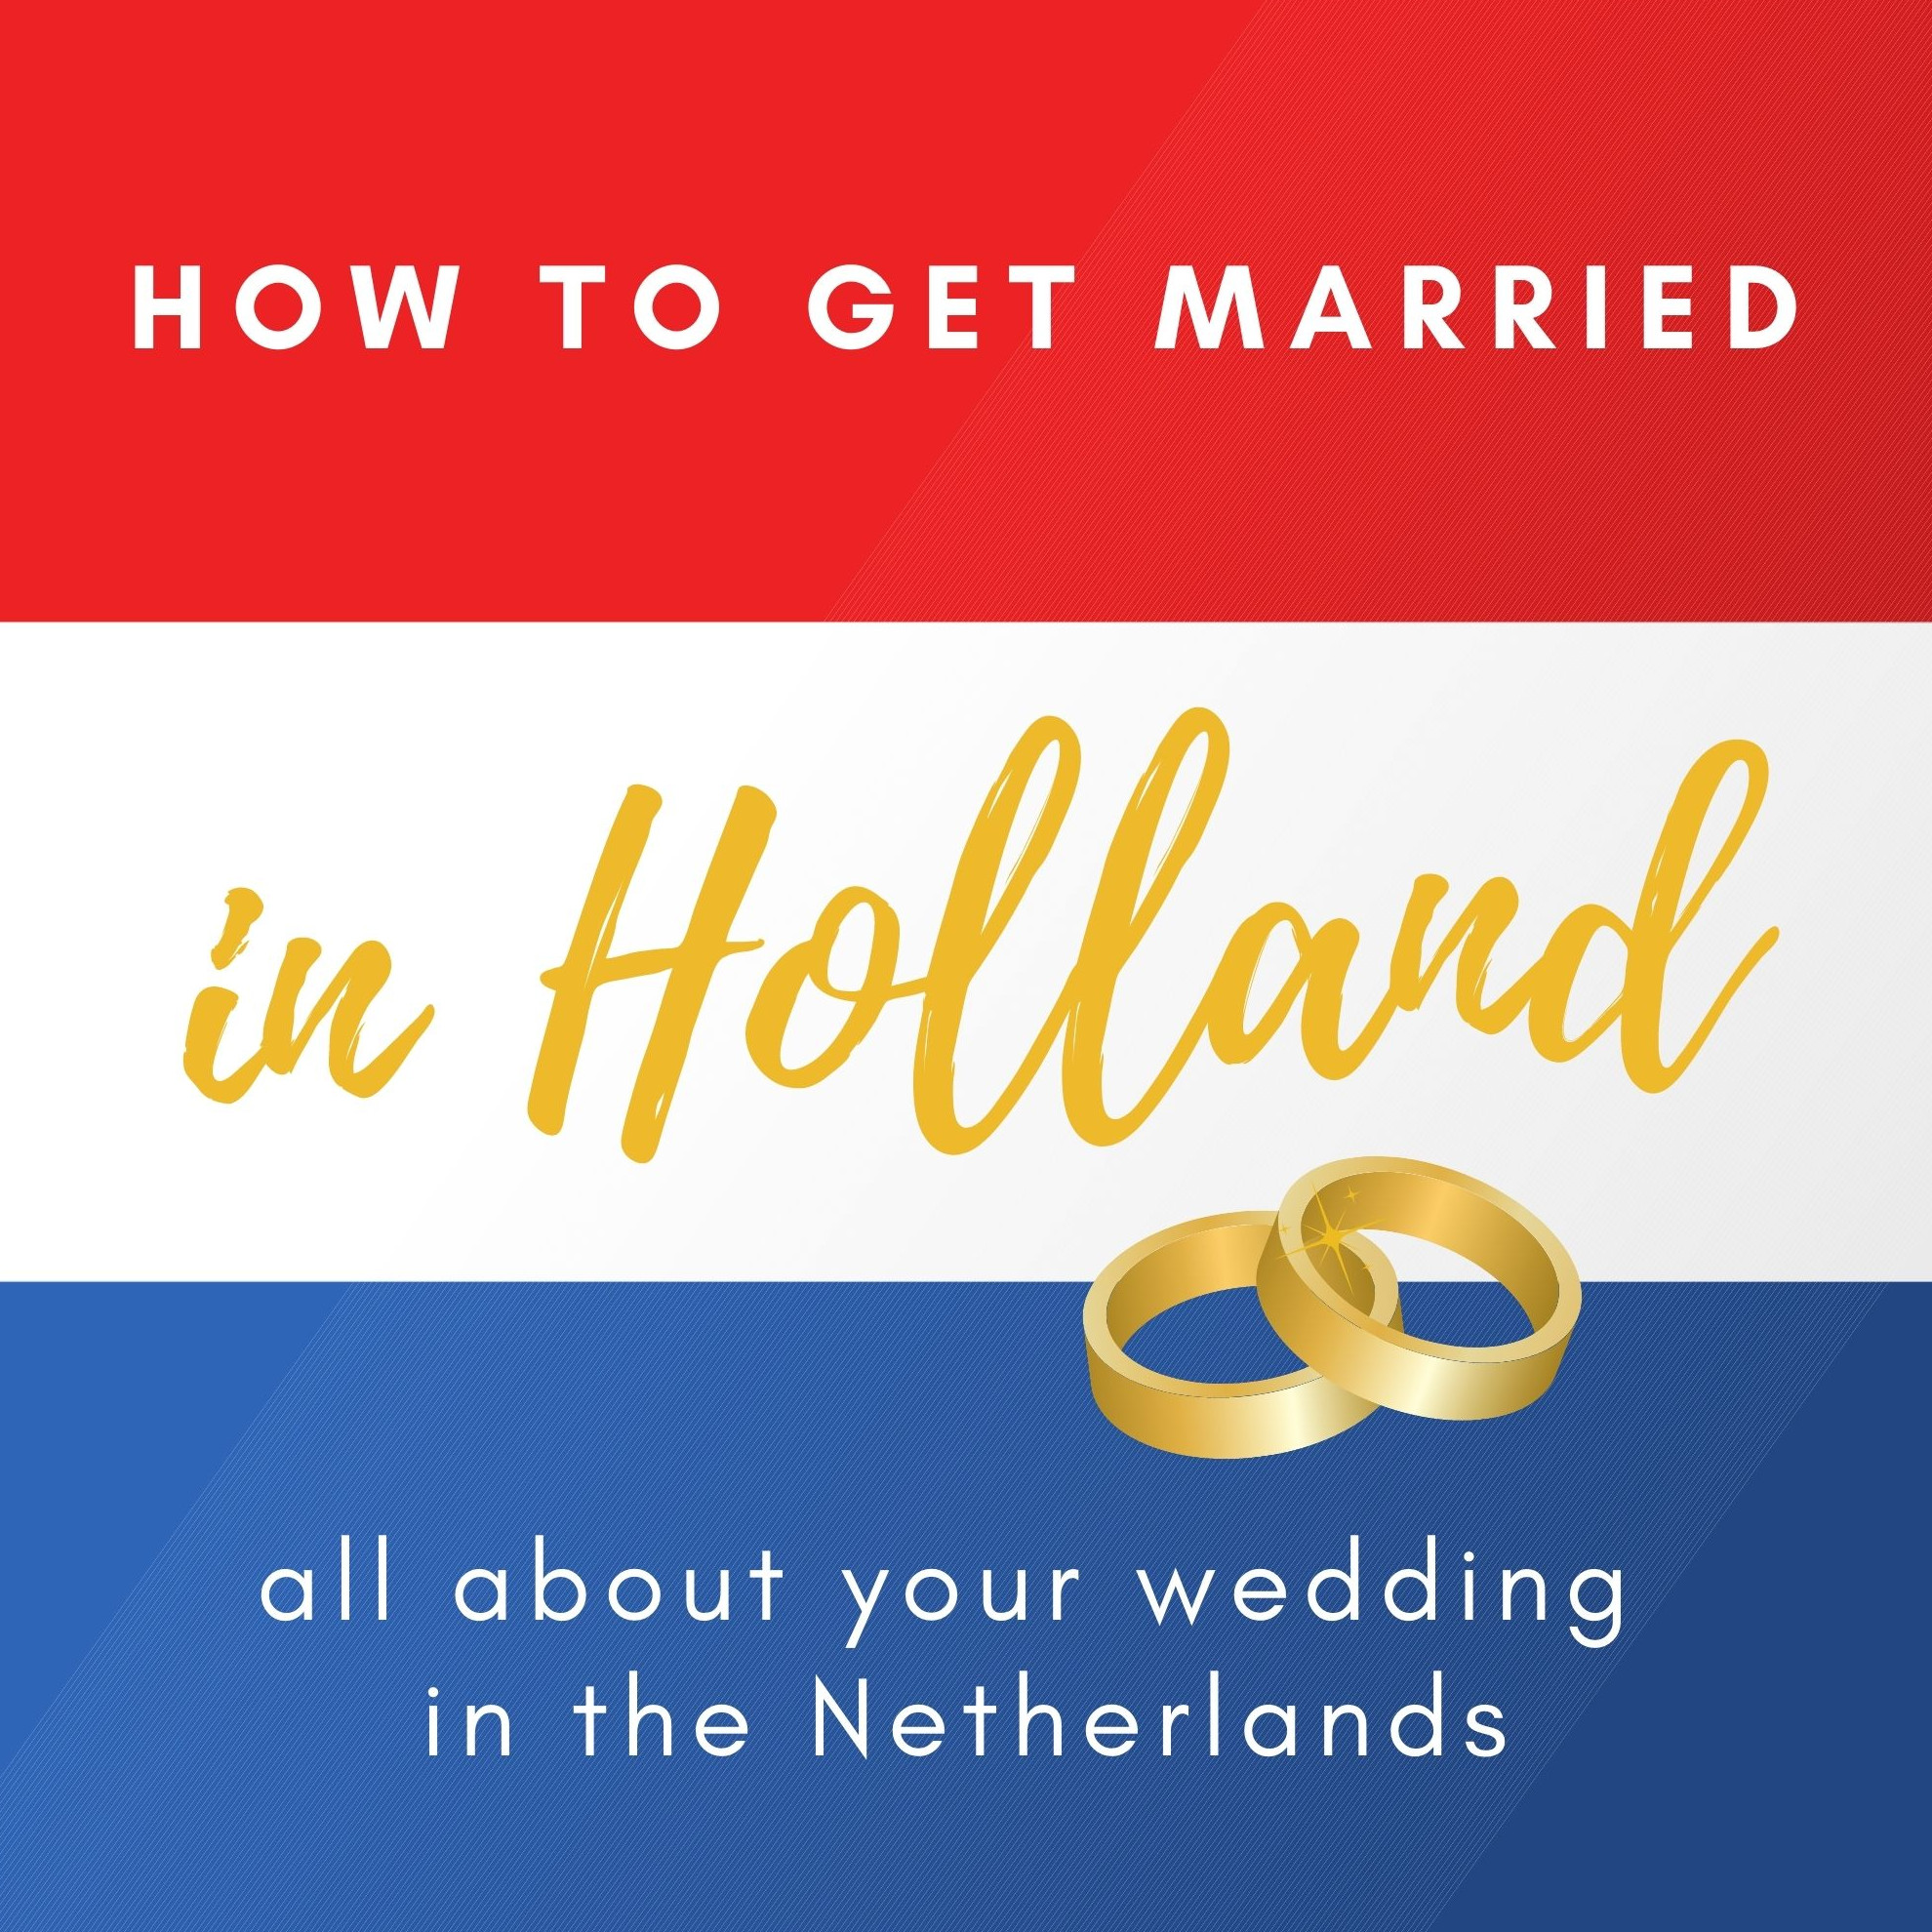 How to get married in Holland logo